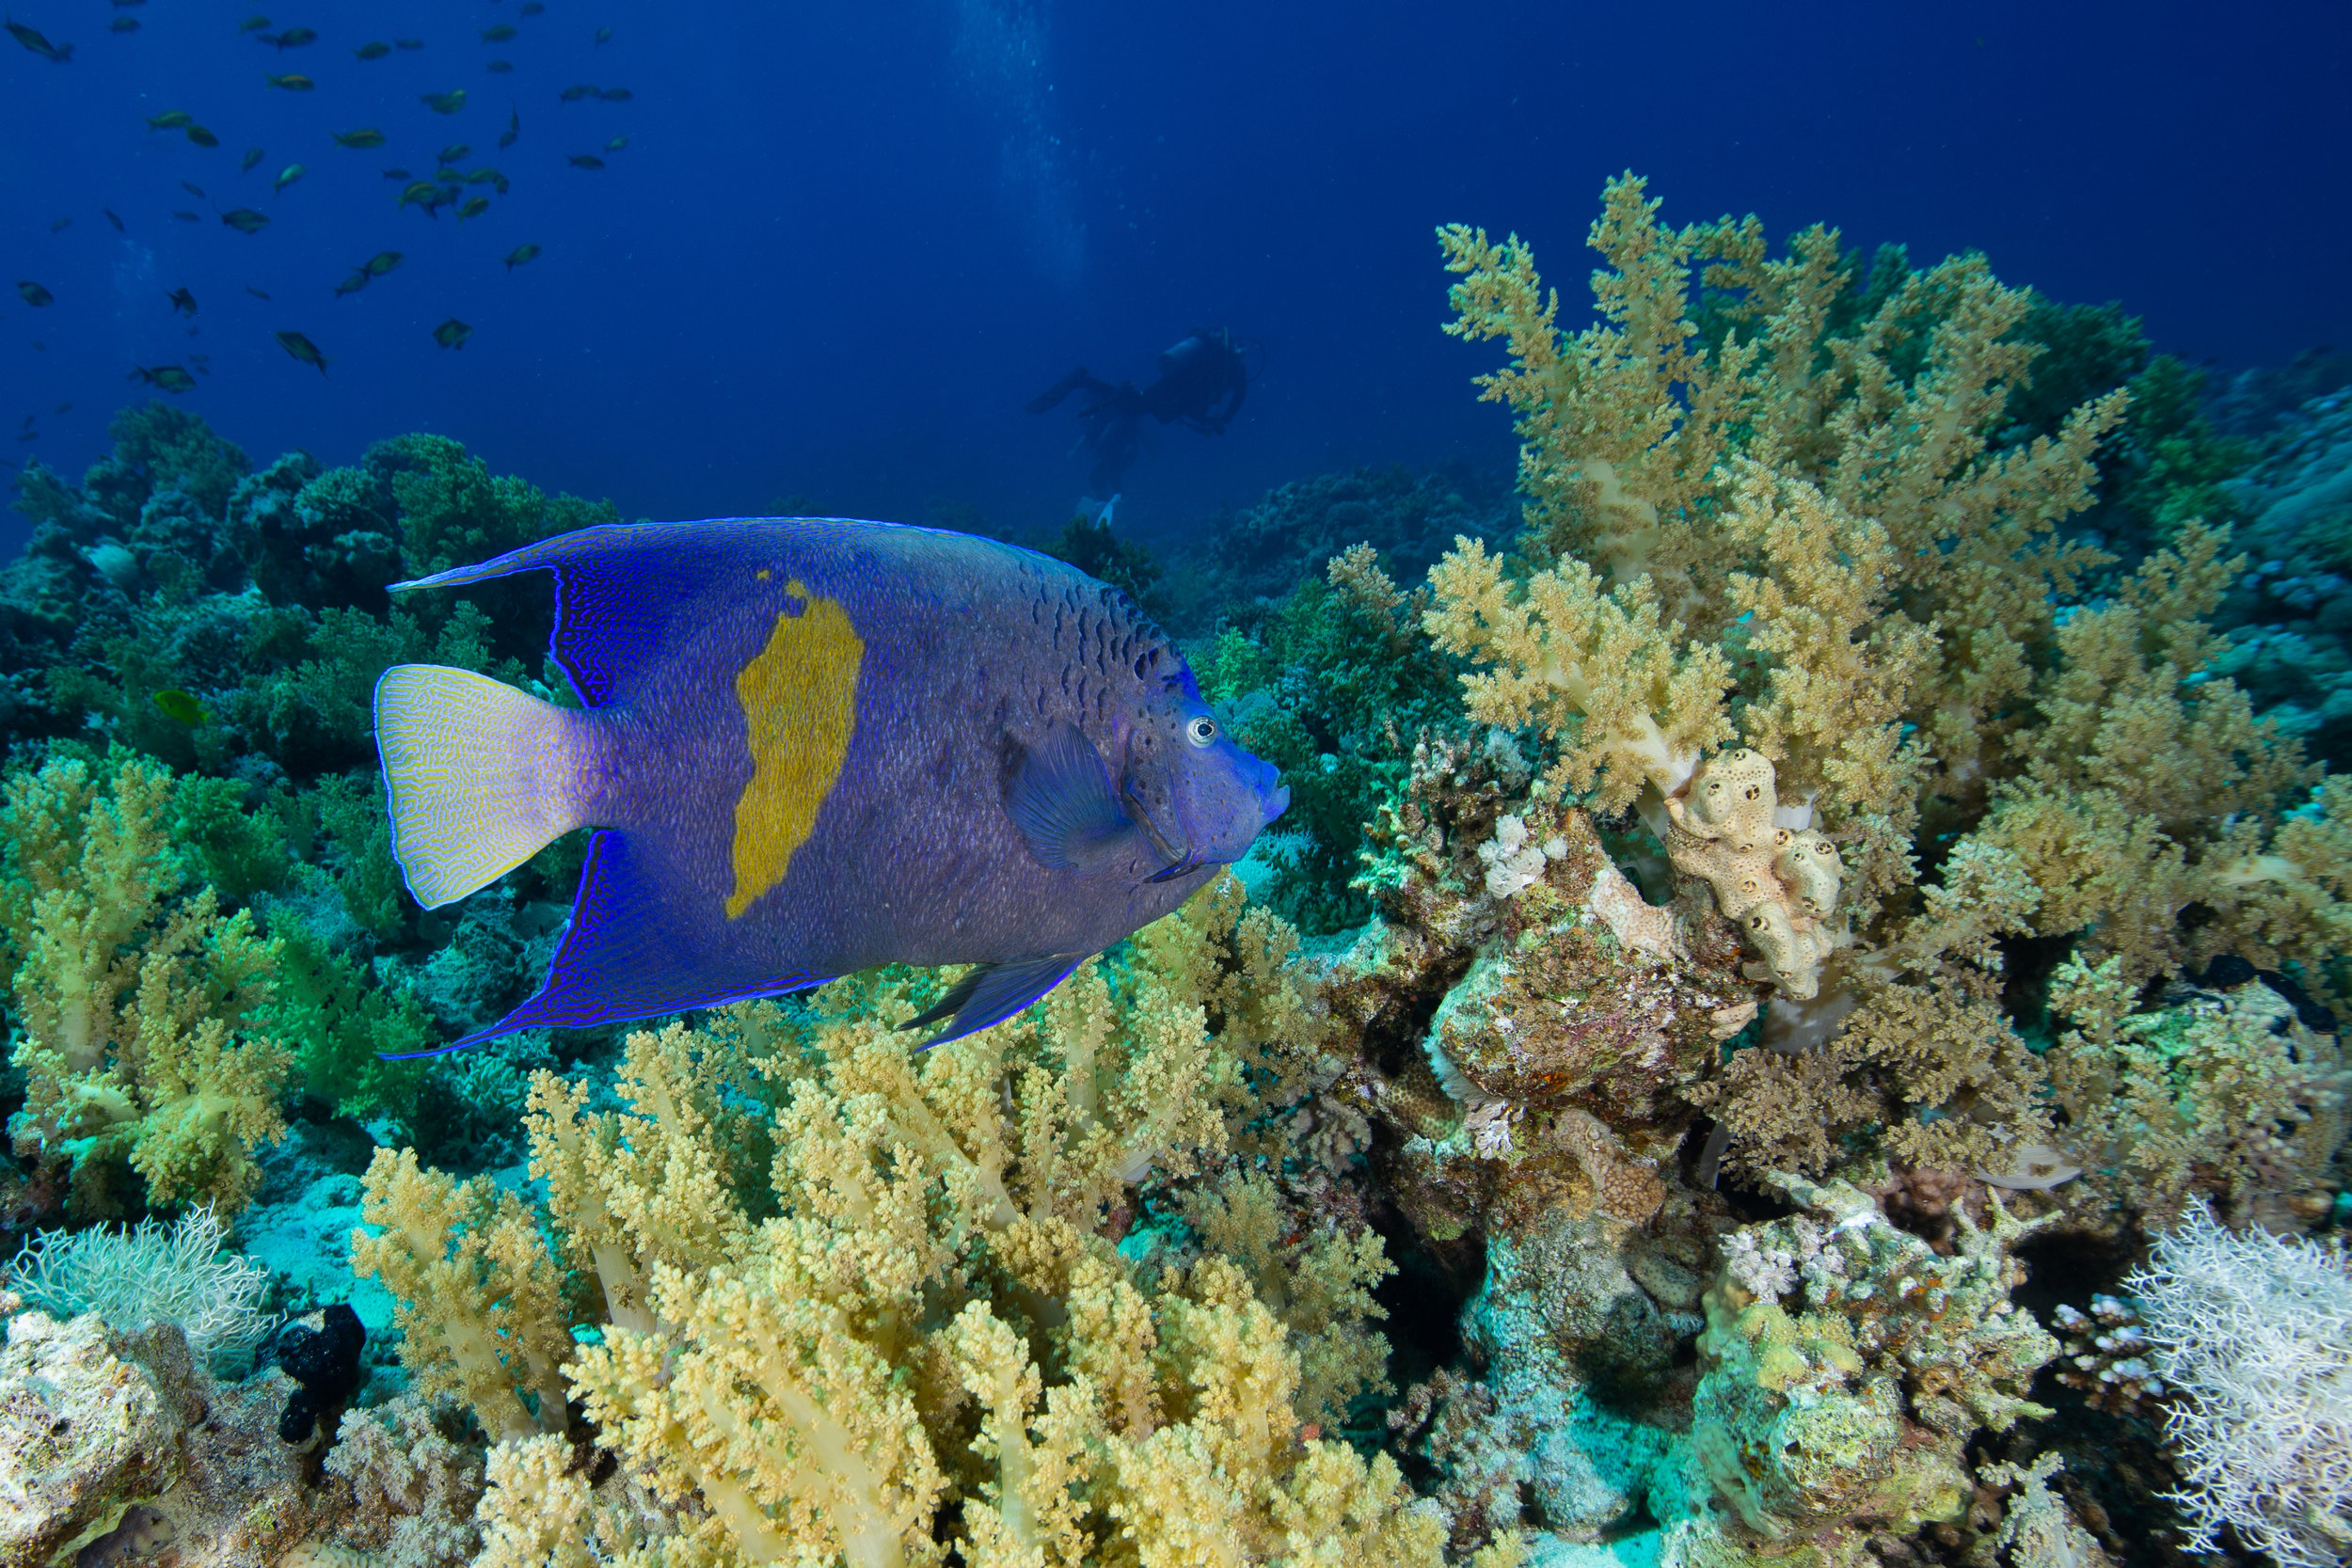 Batfish, Sharm El Sheikh, Red Sea - Egypt - Wild Earth Expeditions